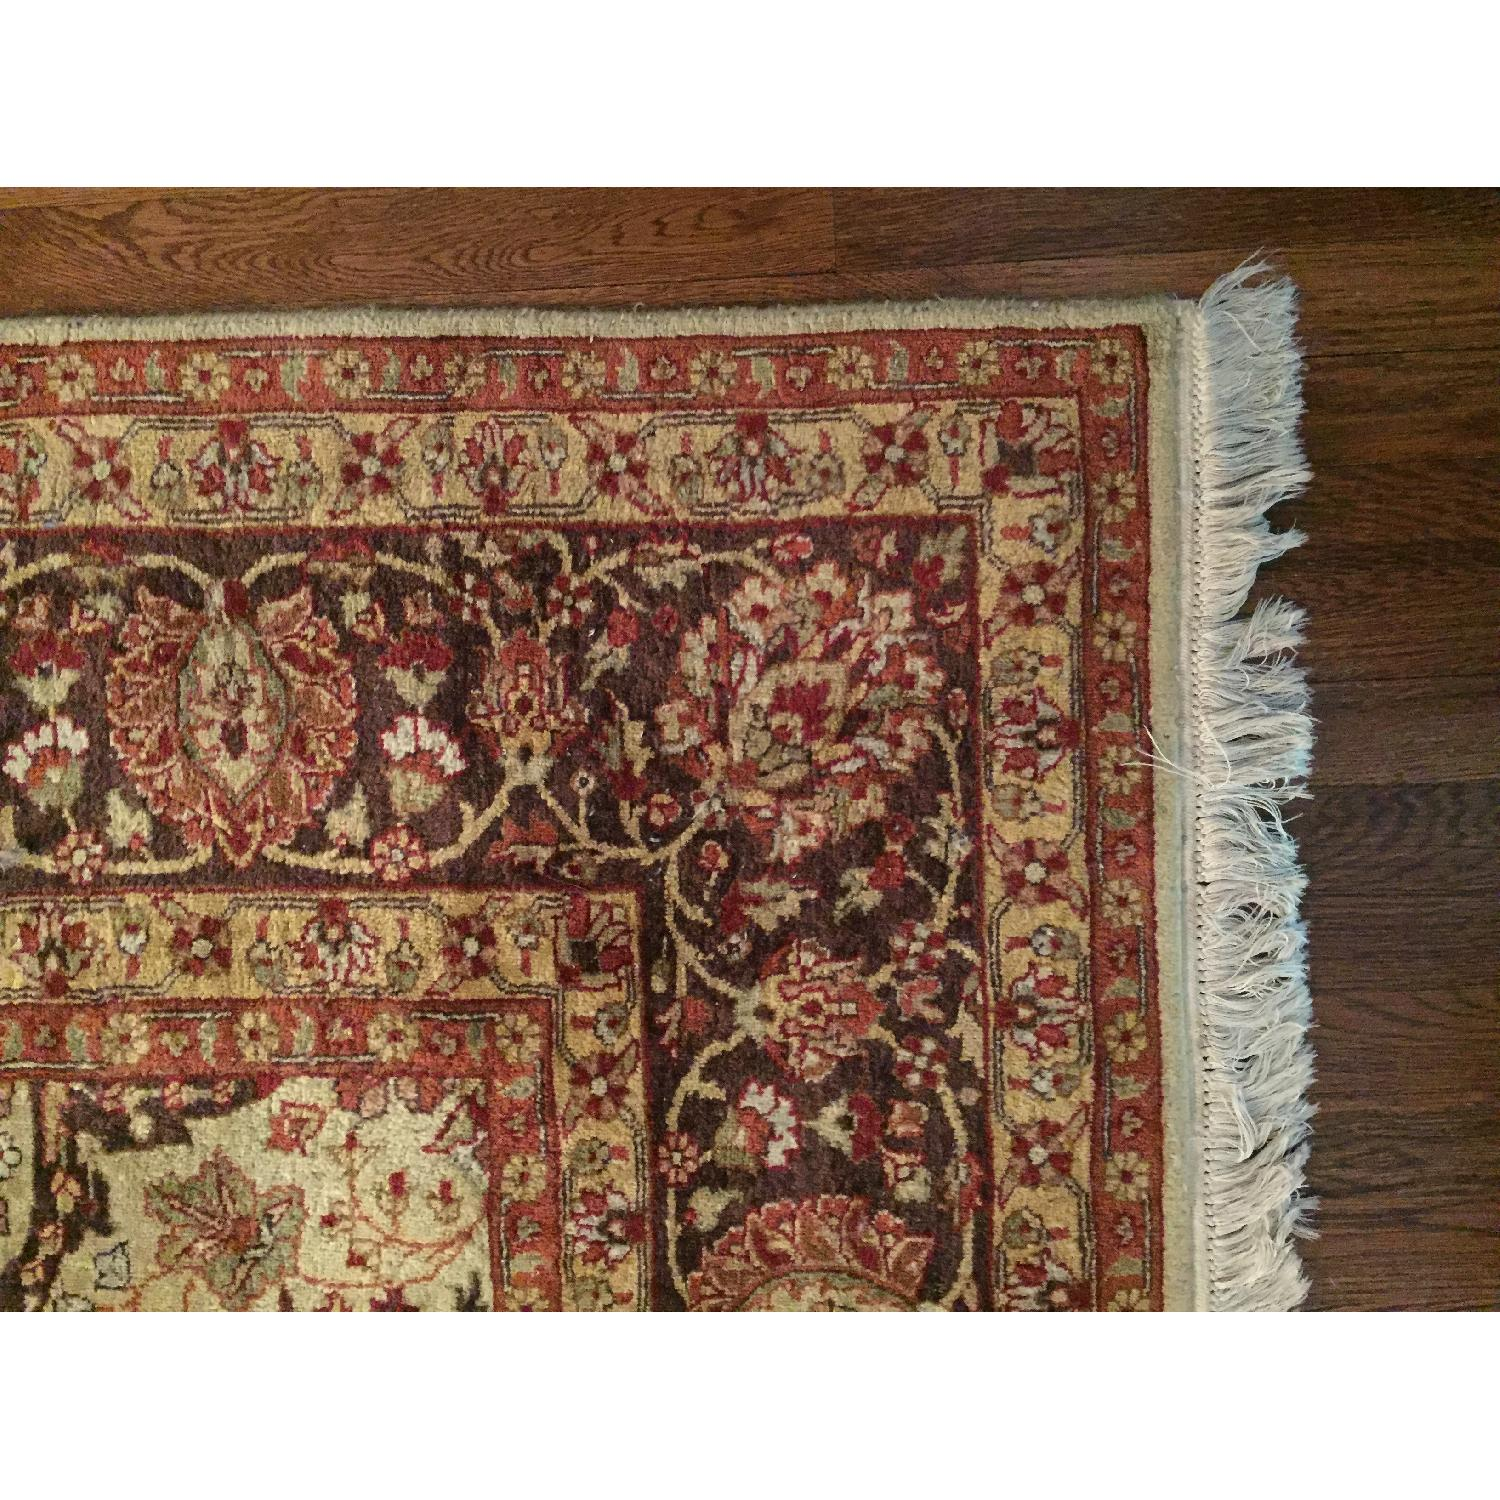 ABC Carpet and Home Tea-Stained Rug - image-4